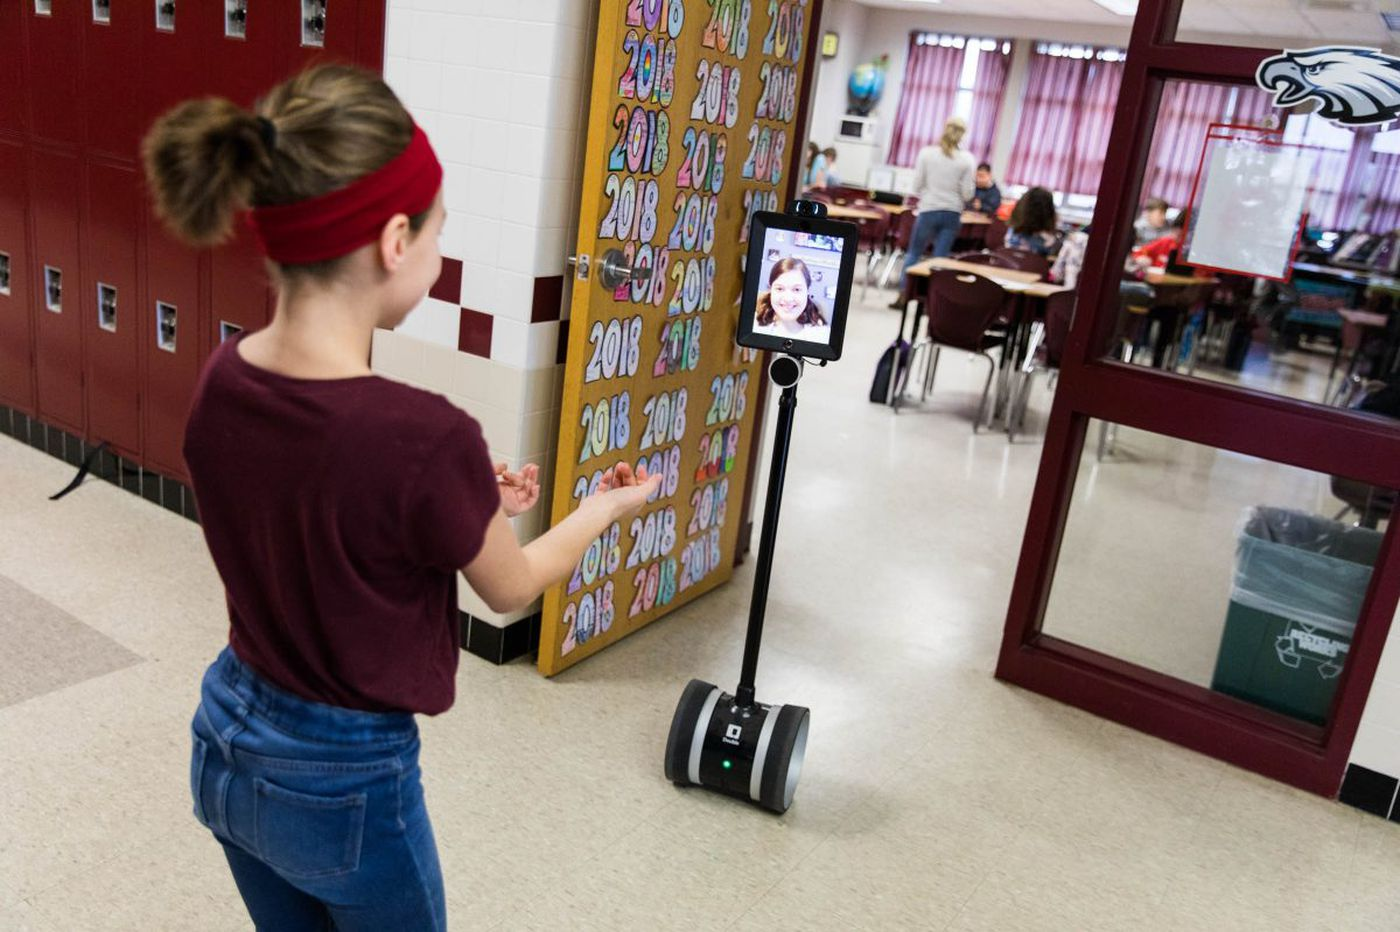 Robot 'double' allows sick students to attend school, see friends